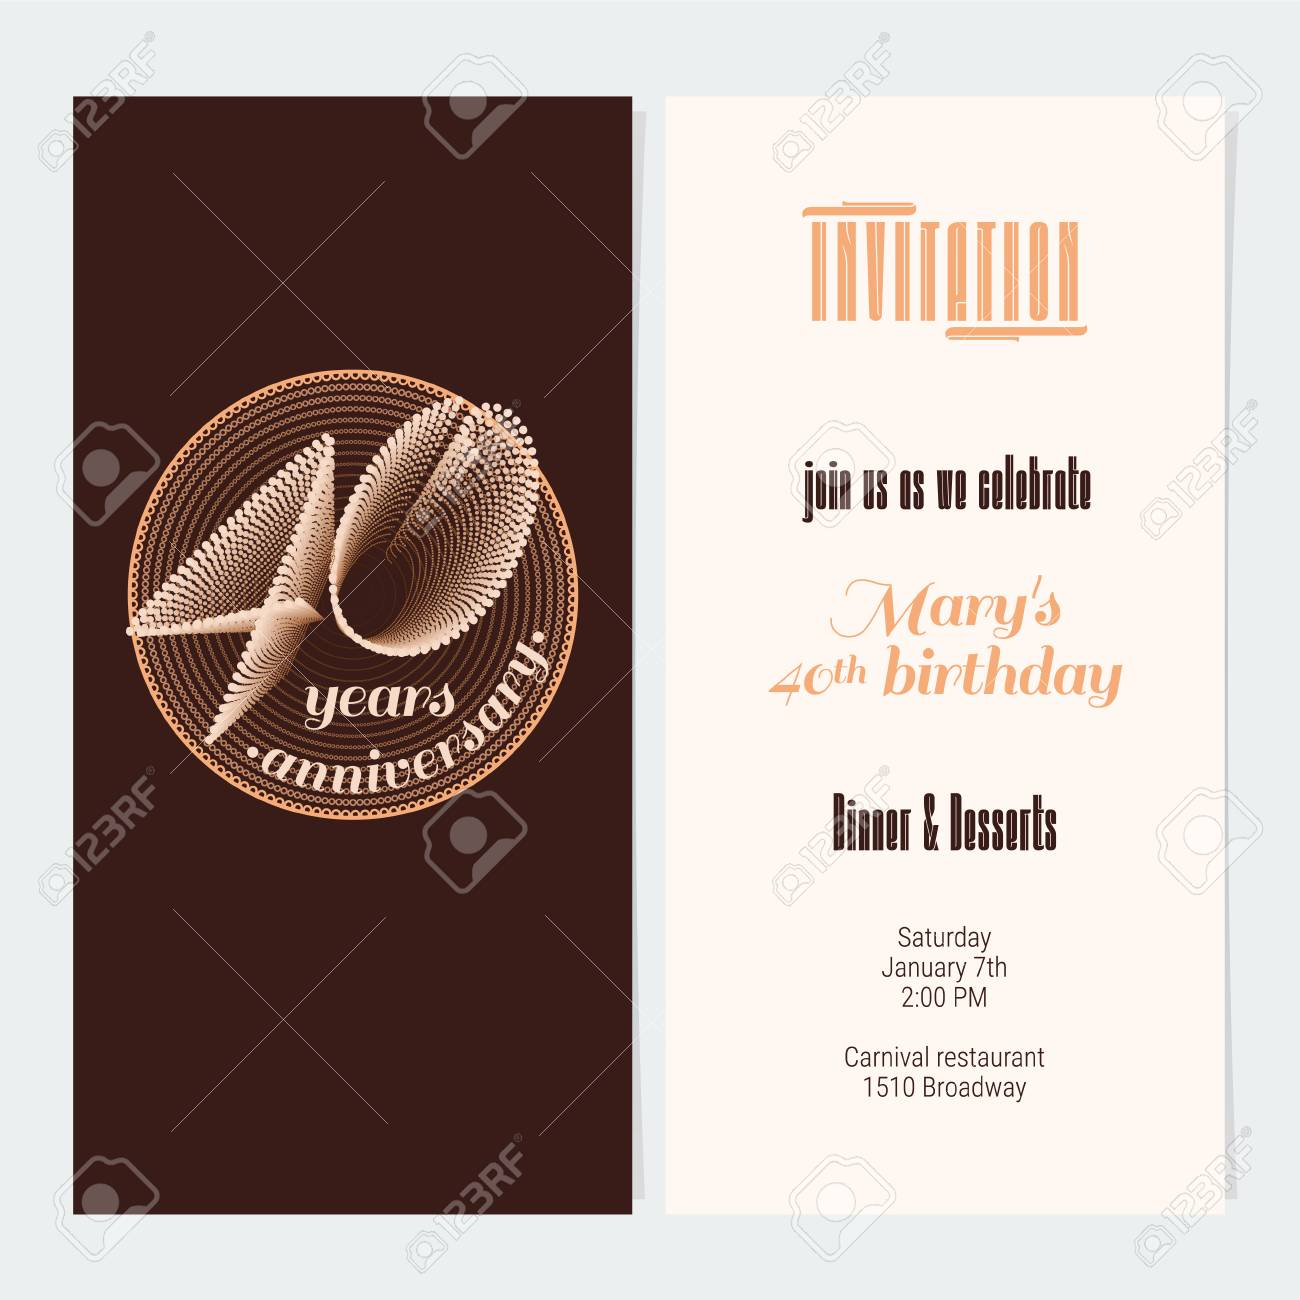 40 Years Anniversary Invitation Vector Illustration Graphic Design Element For 40th Birthday Card Party